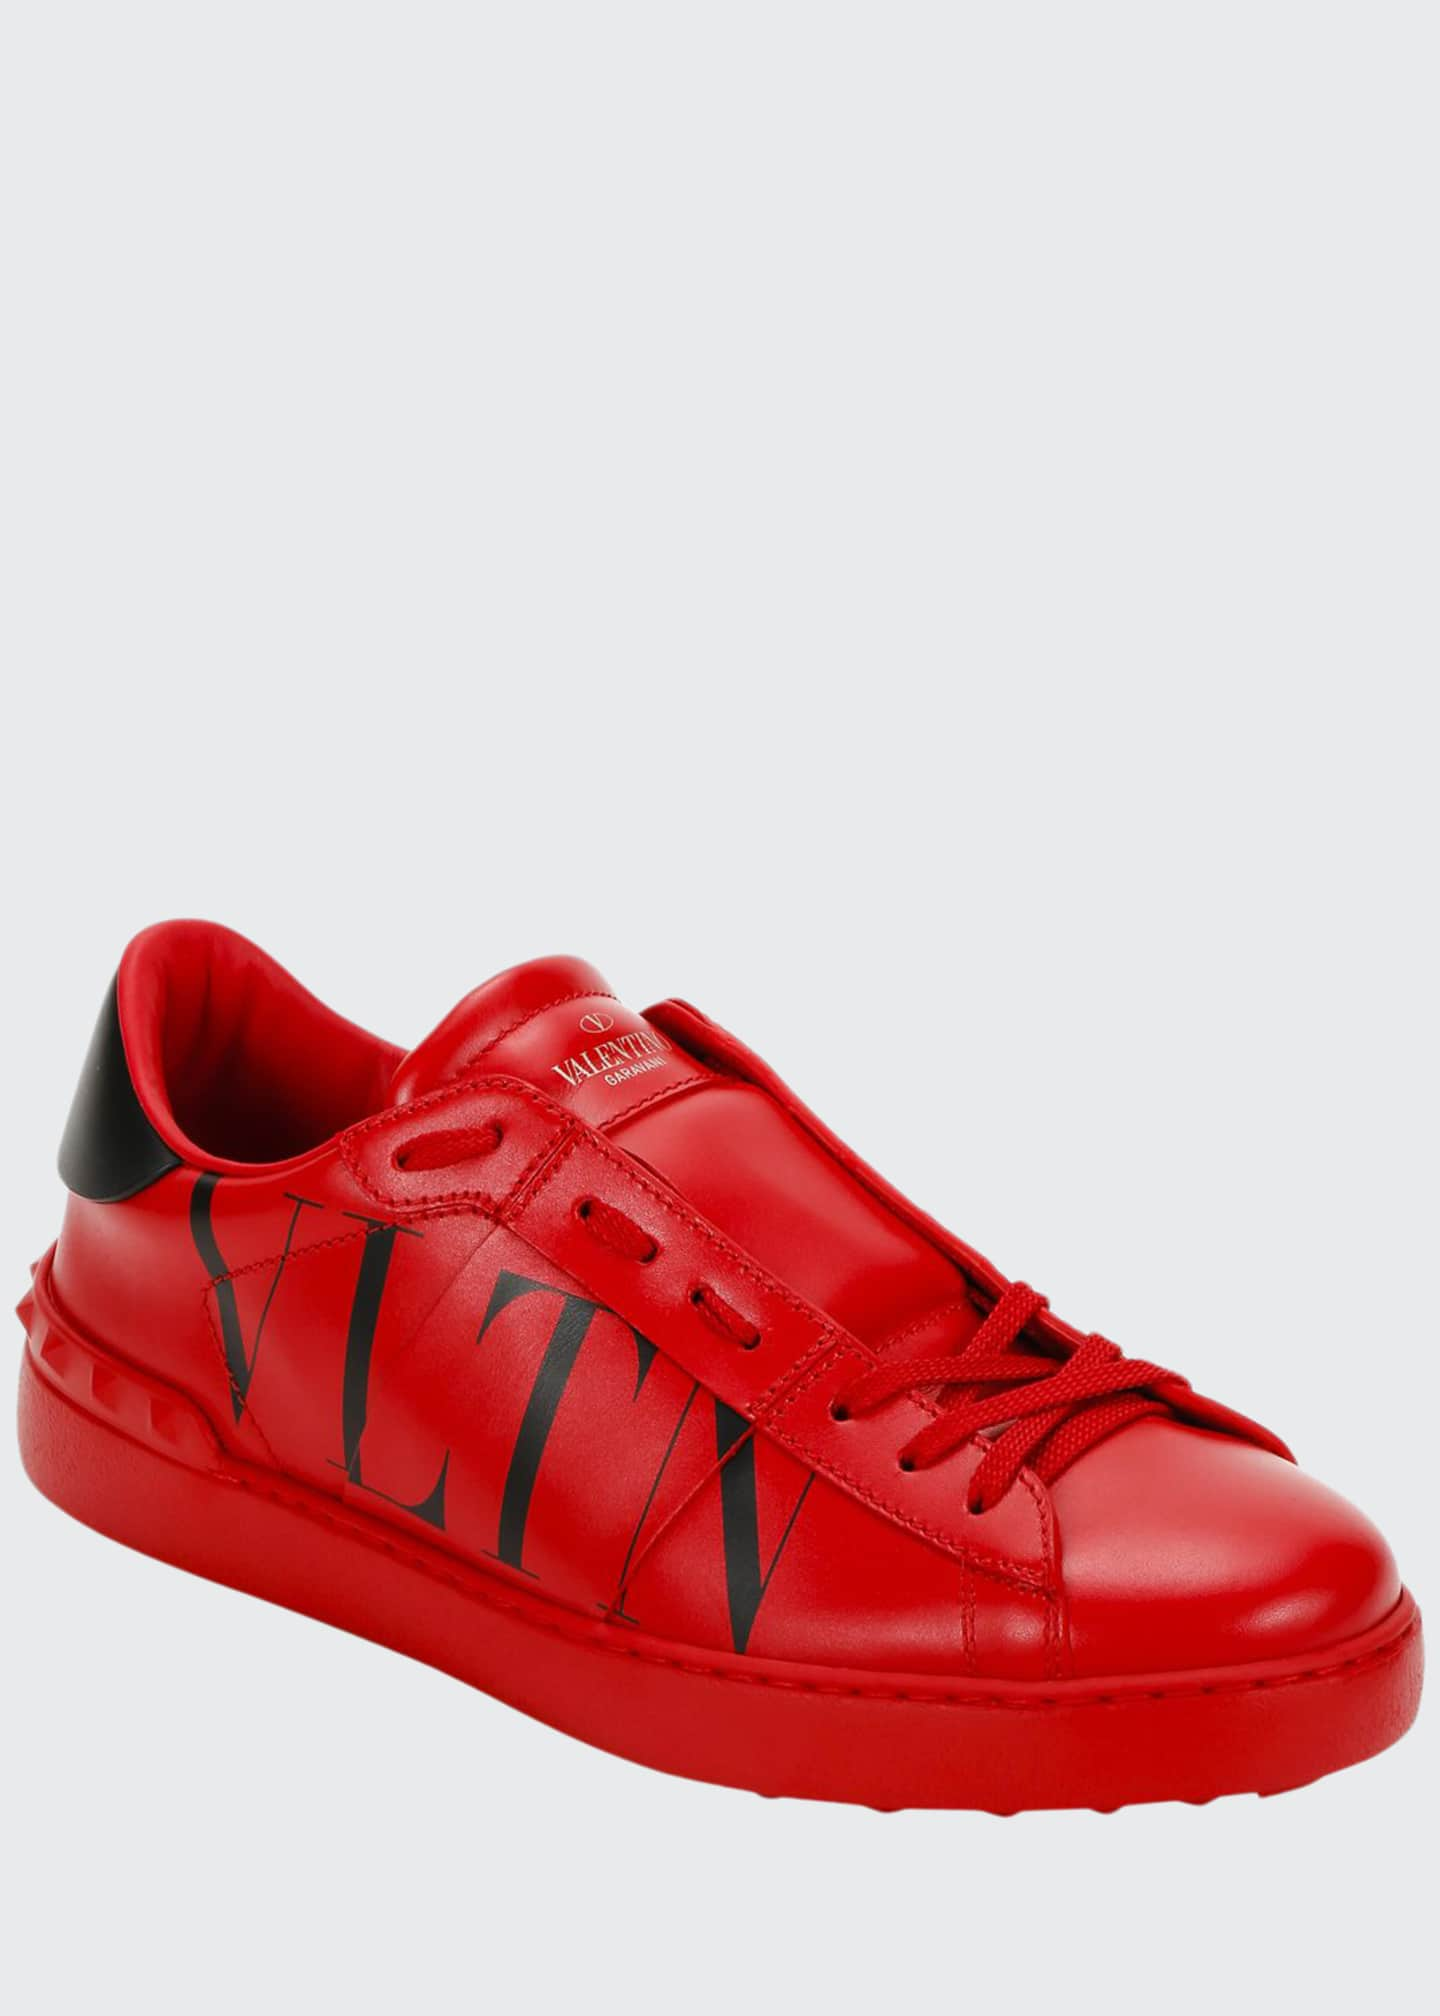 Men's Rockstud Walker VLTN Leather Sneakers